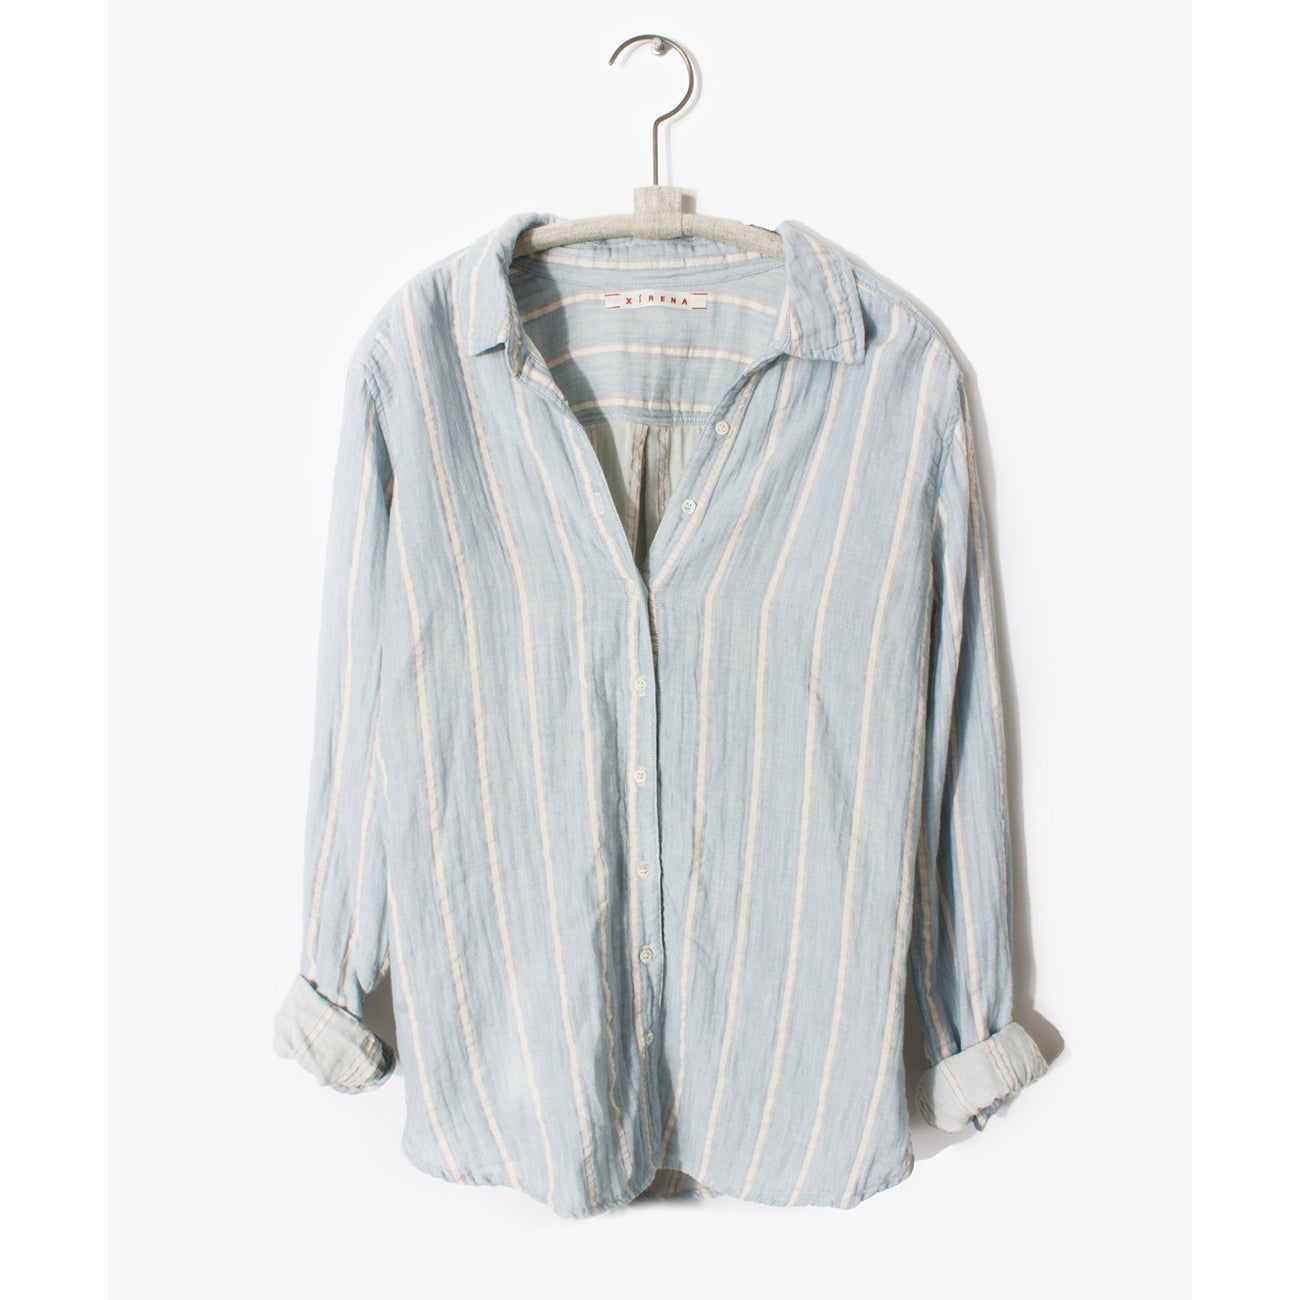 Xirena Scout Shirt in Seaside Blue